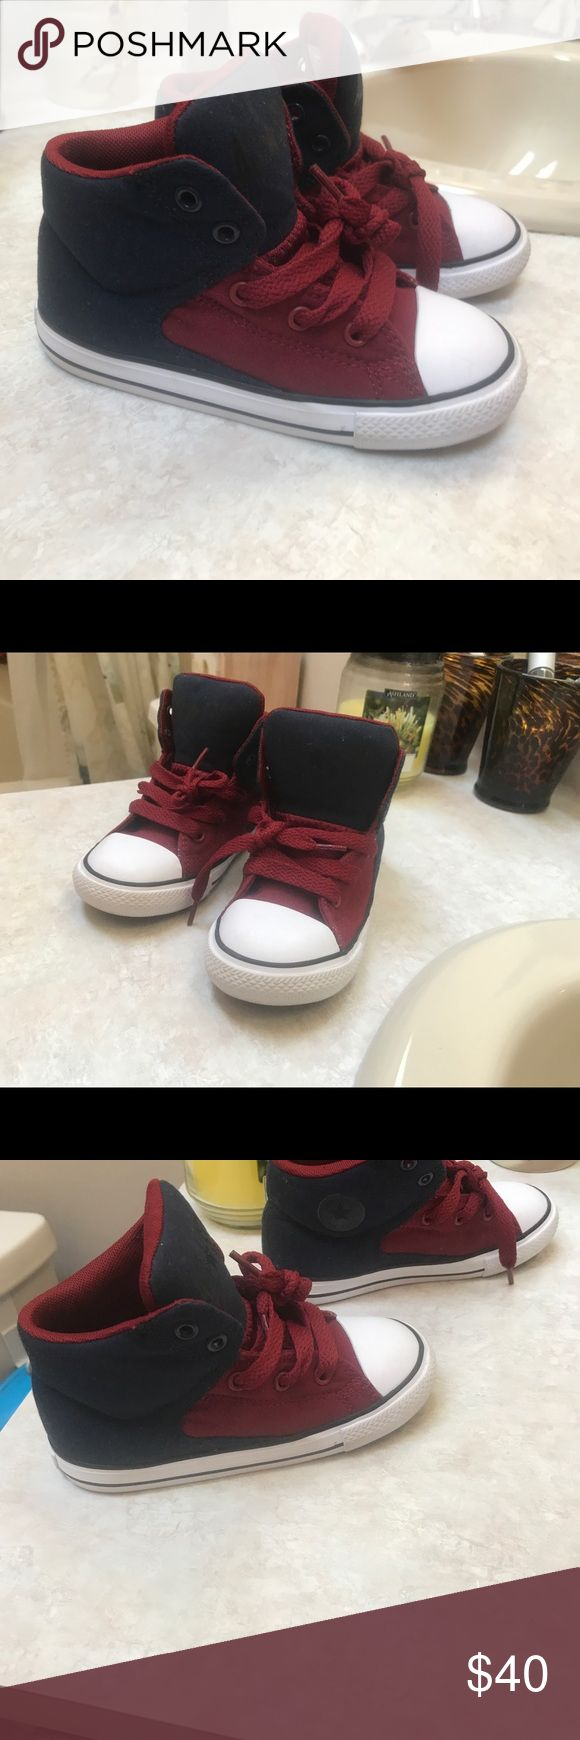 Converse high tops boys sneakers Navy and red converse high top sneakers toddler boy. Excellent condition worn once for a picture Converse Shoes Sneakers